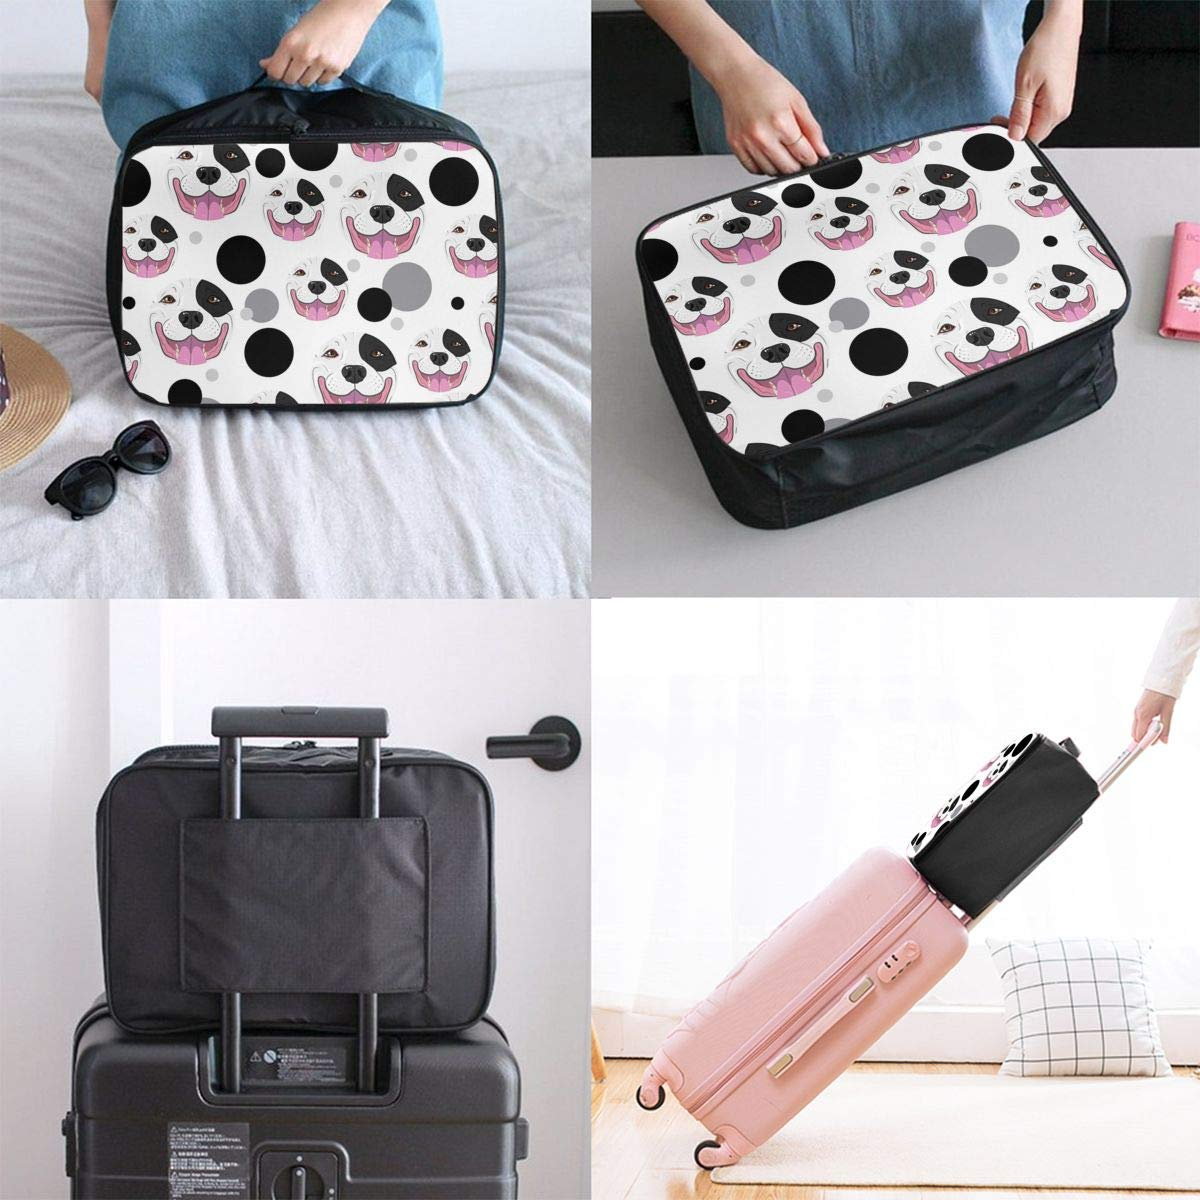 Casual Large Capacity Portable Luggage Bag Suitcase Storage Bag Luggage Packing Tote Bag Sweet Candy Cane Travel Duffel Bag Weekend Trip